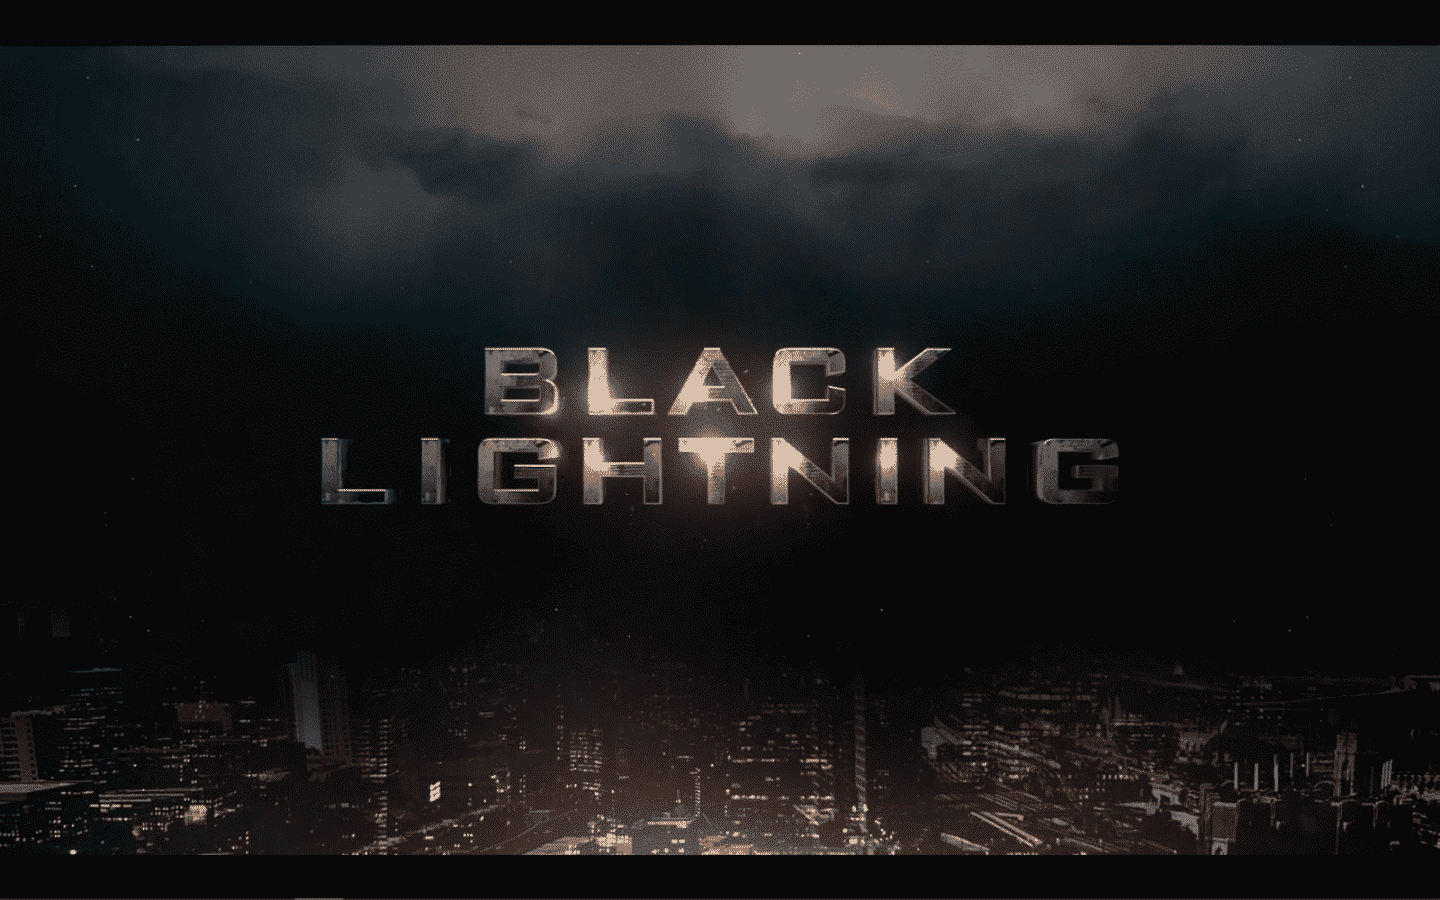 The title card for Black Lightning